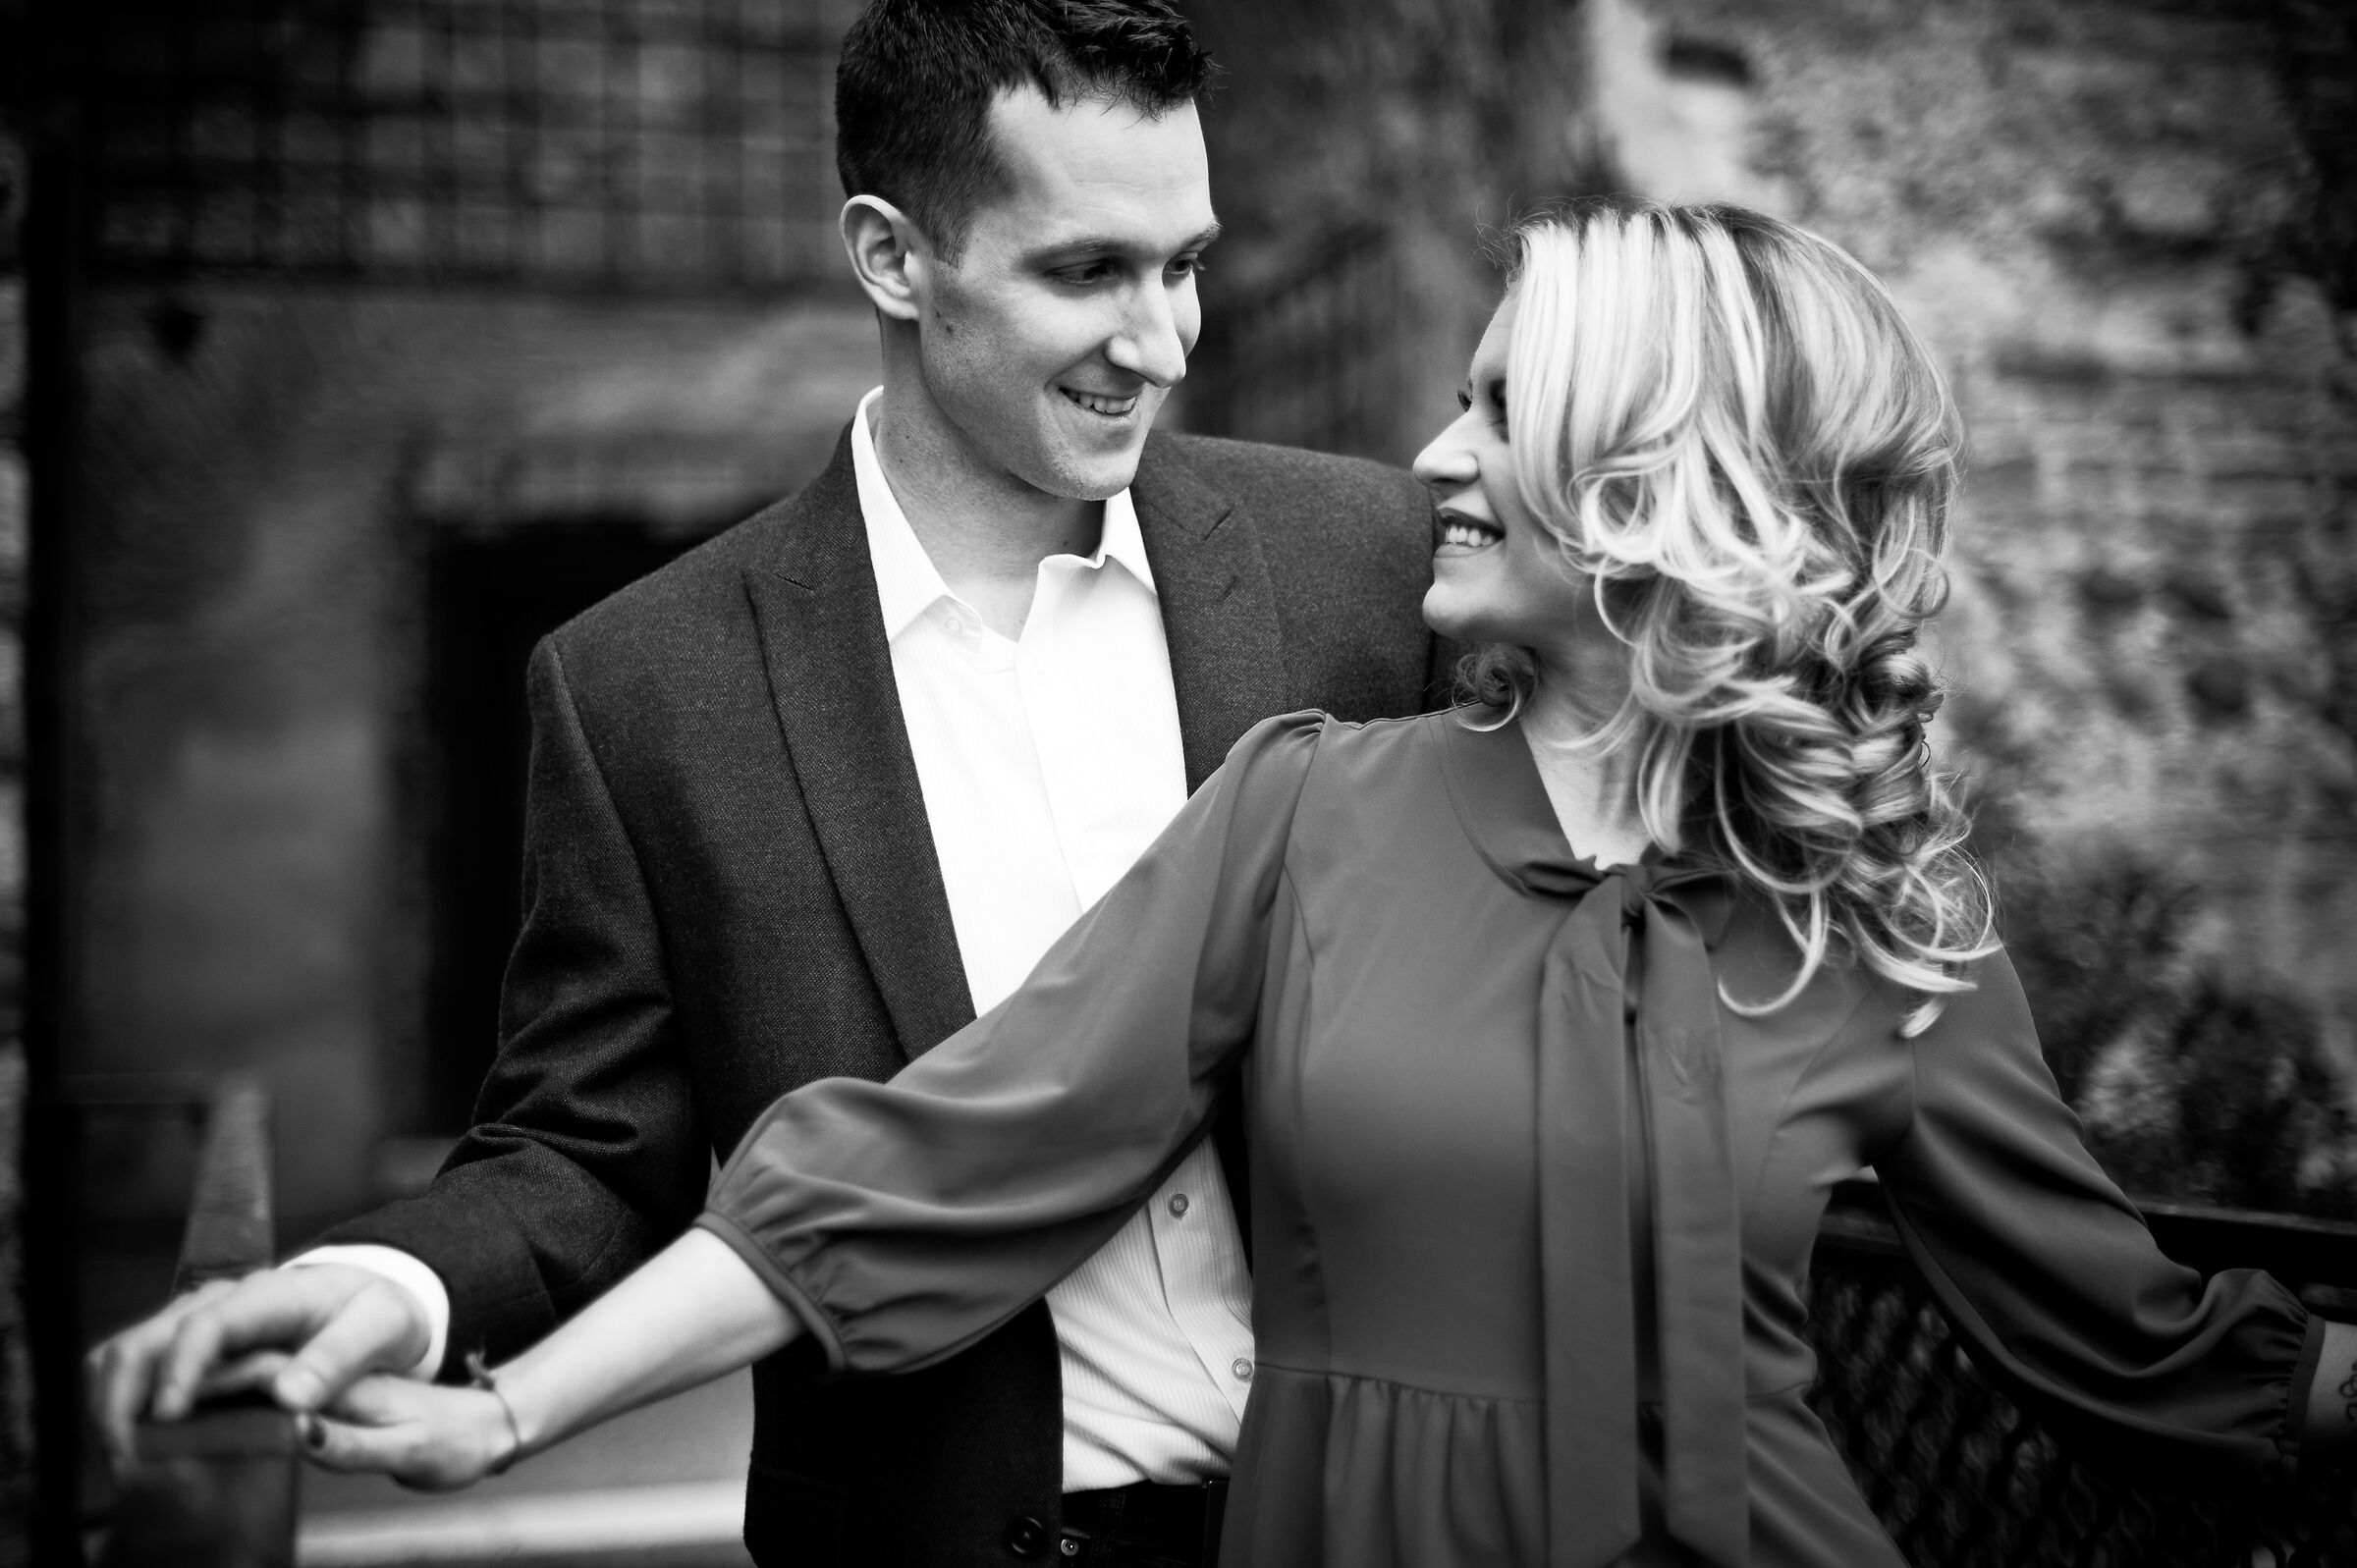 Heather & Todd - Prewedding...